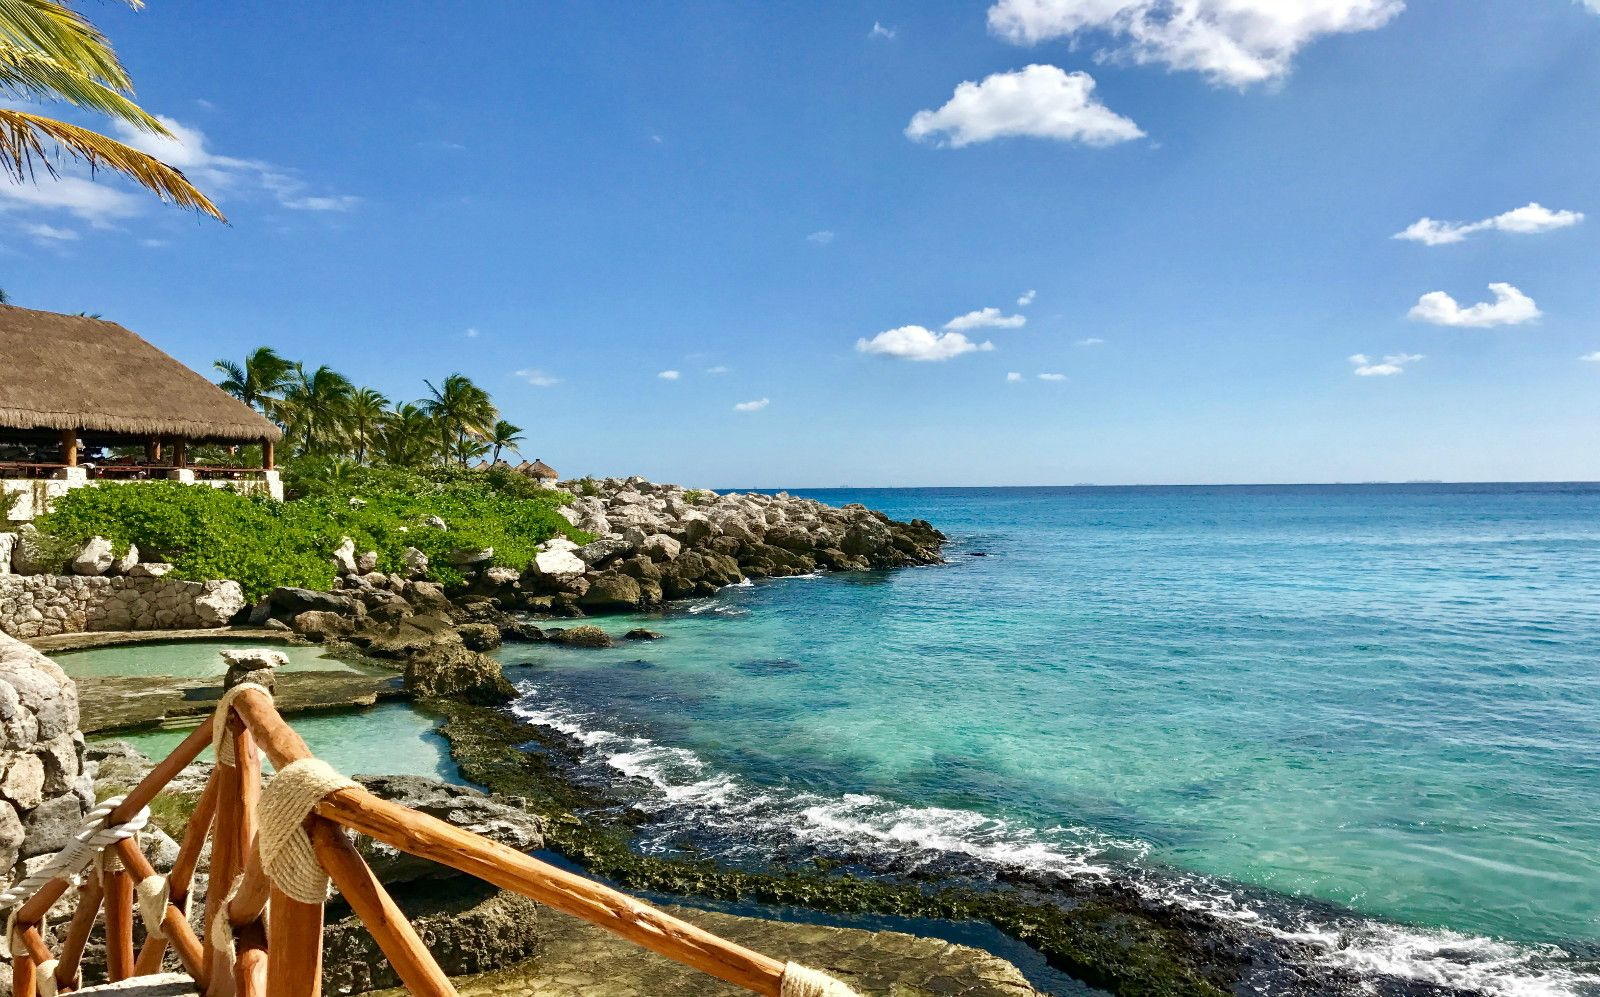 Travel To Cancun: Tips And Travel Guide